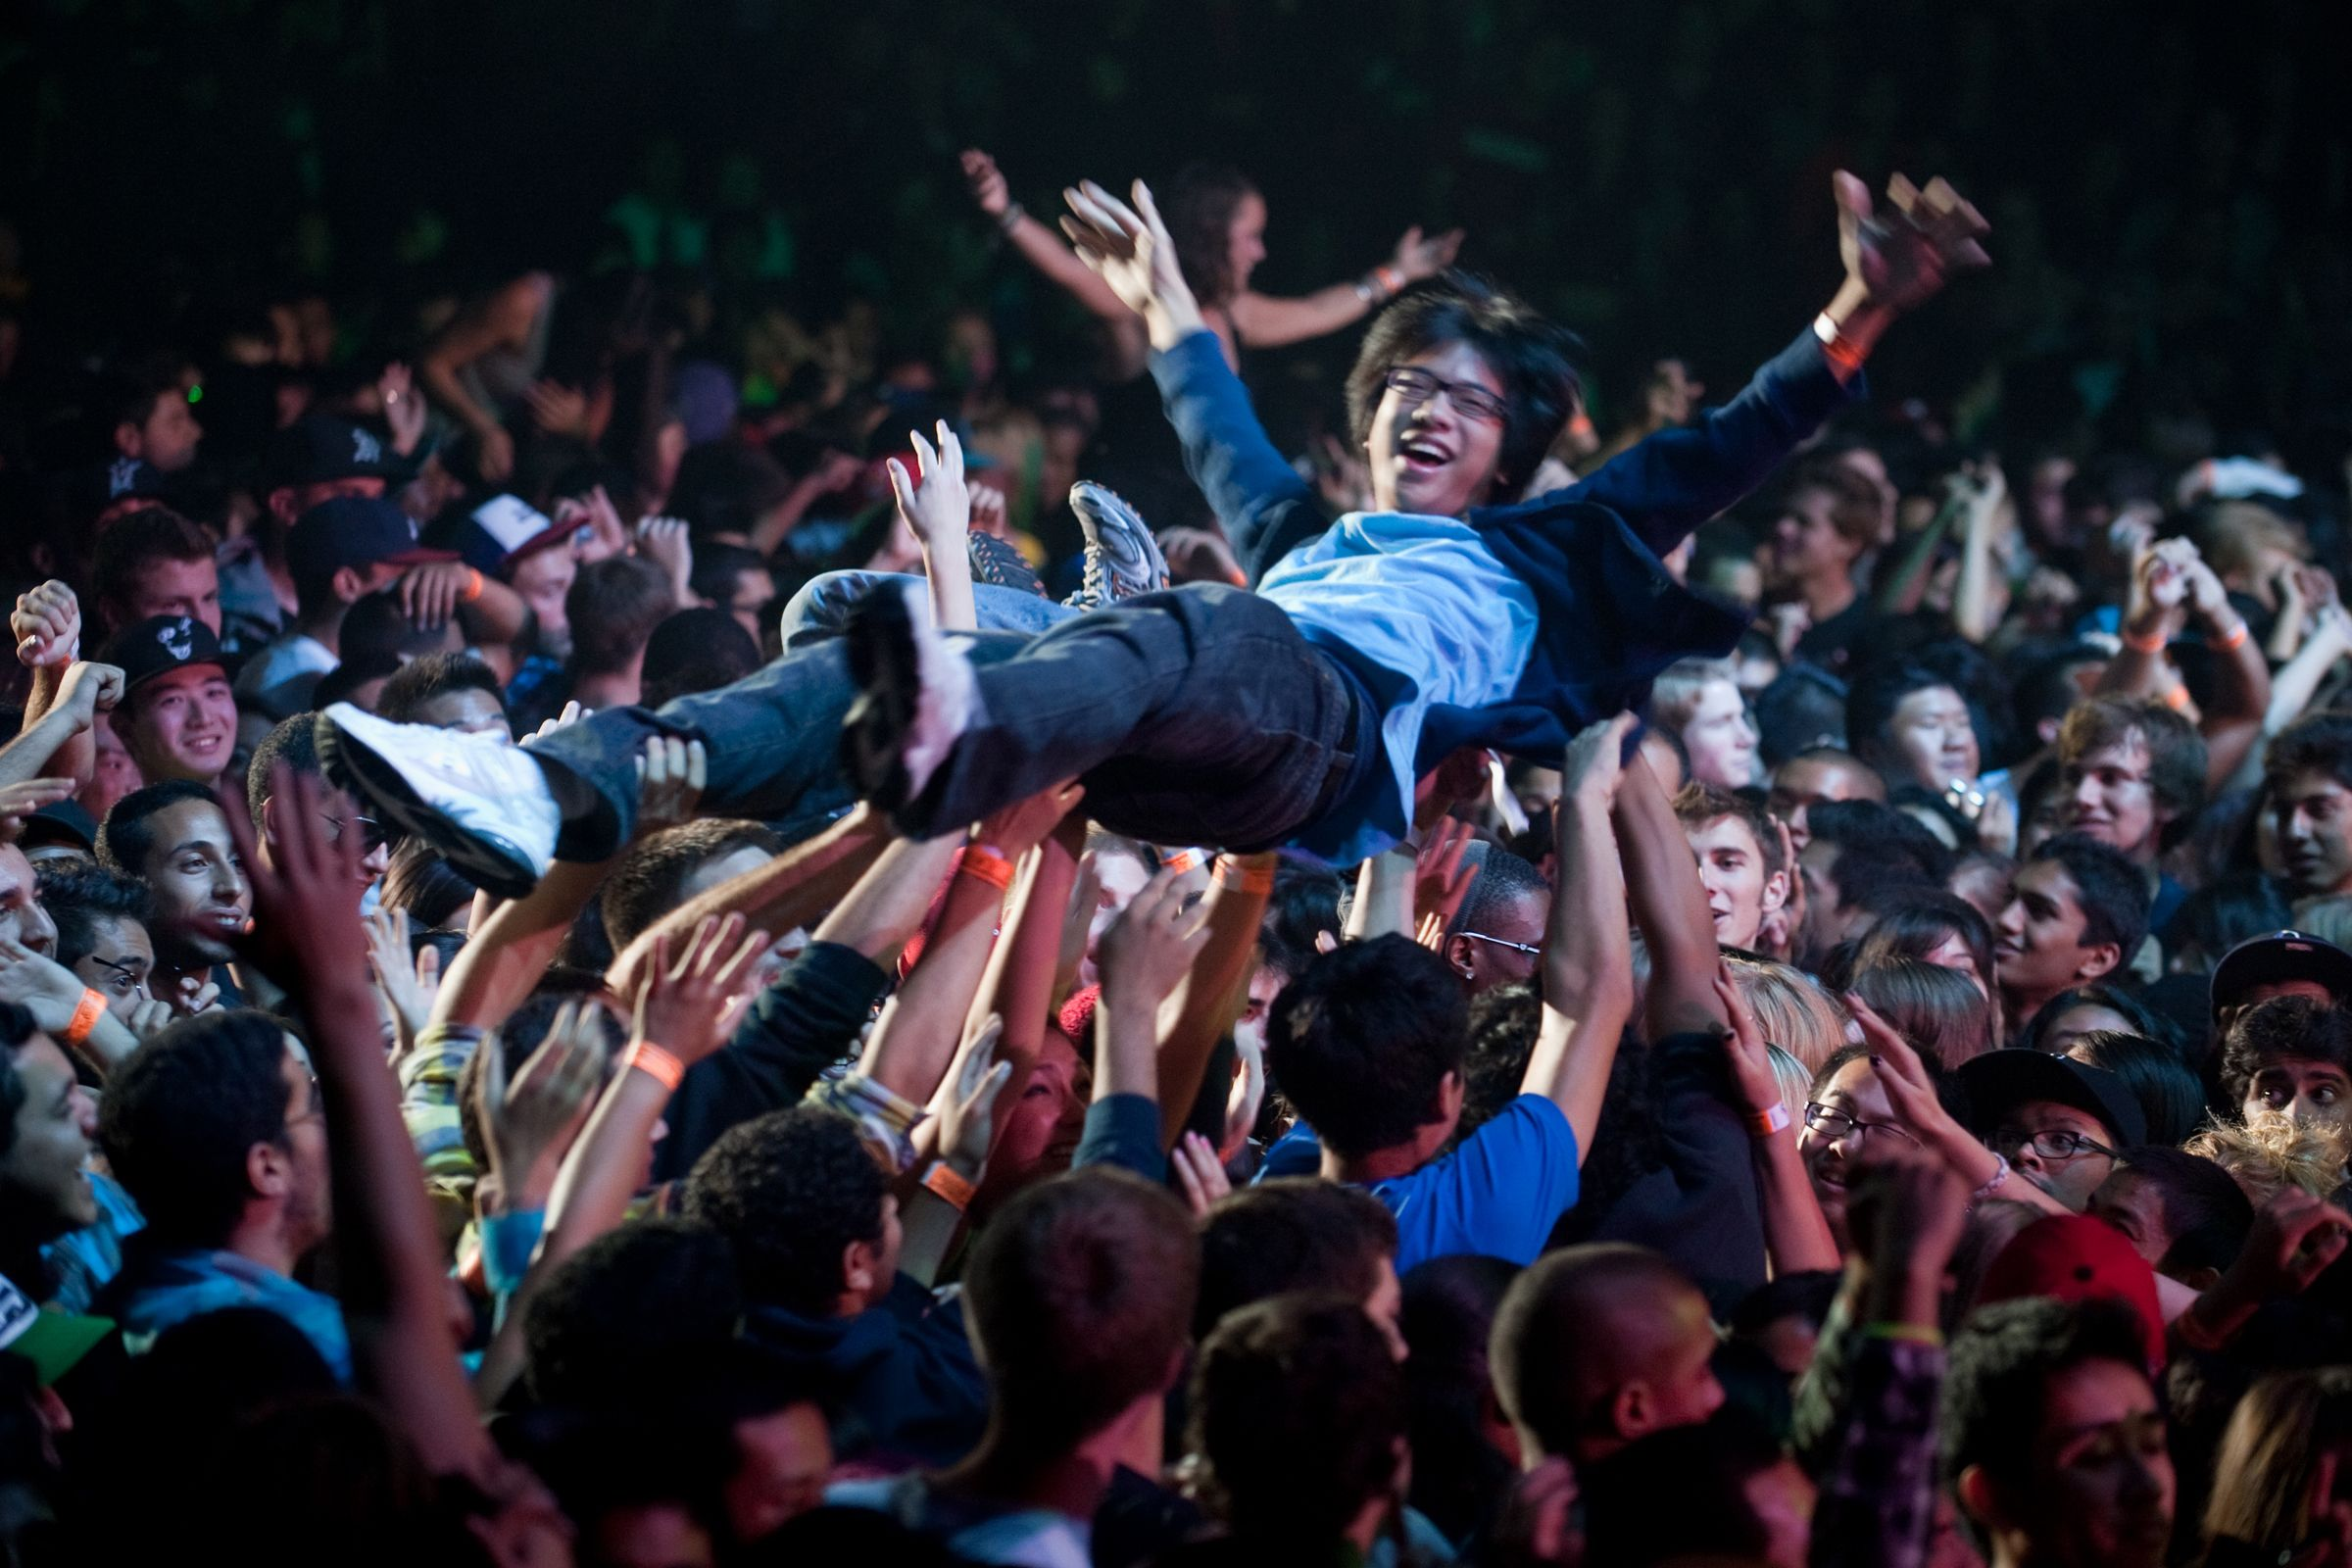 Crowd surf fetish picture 40